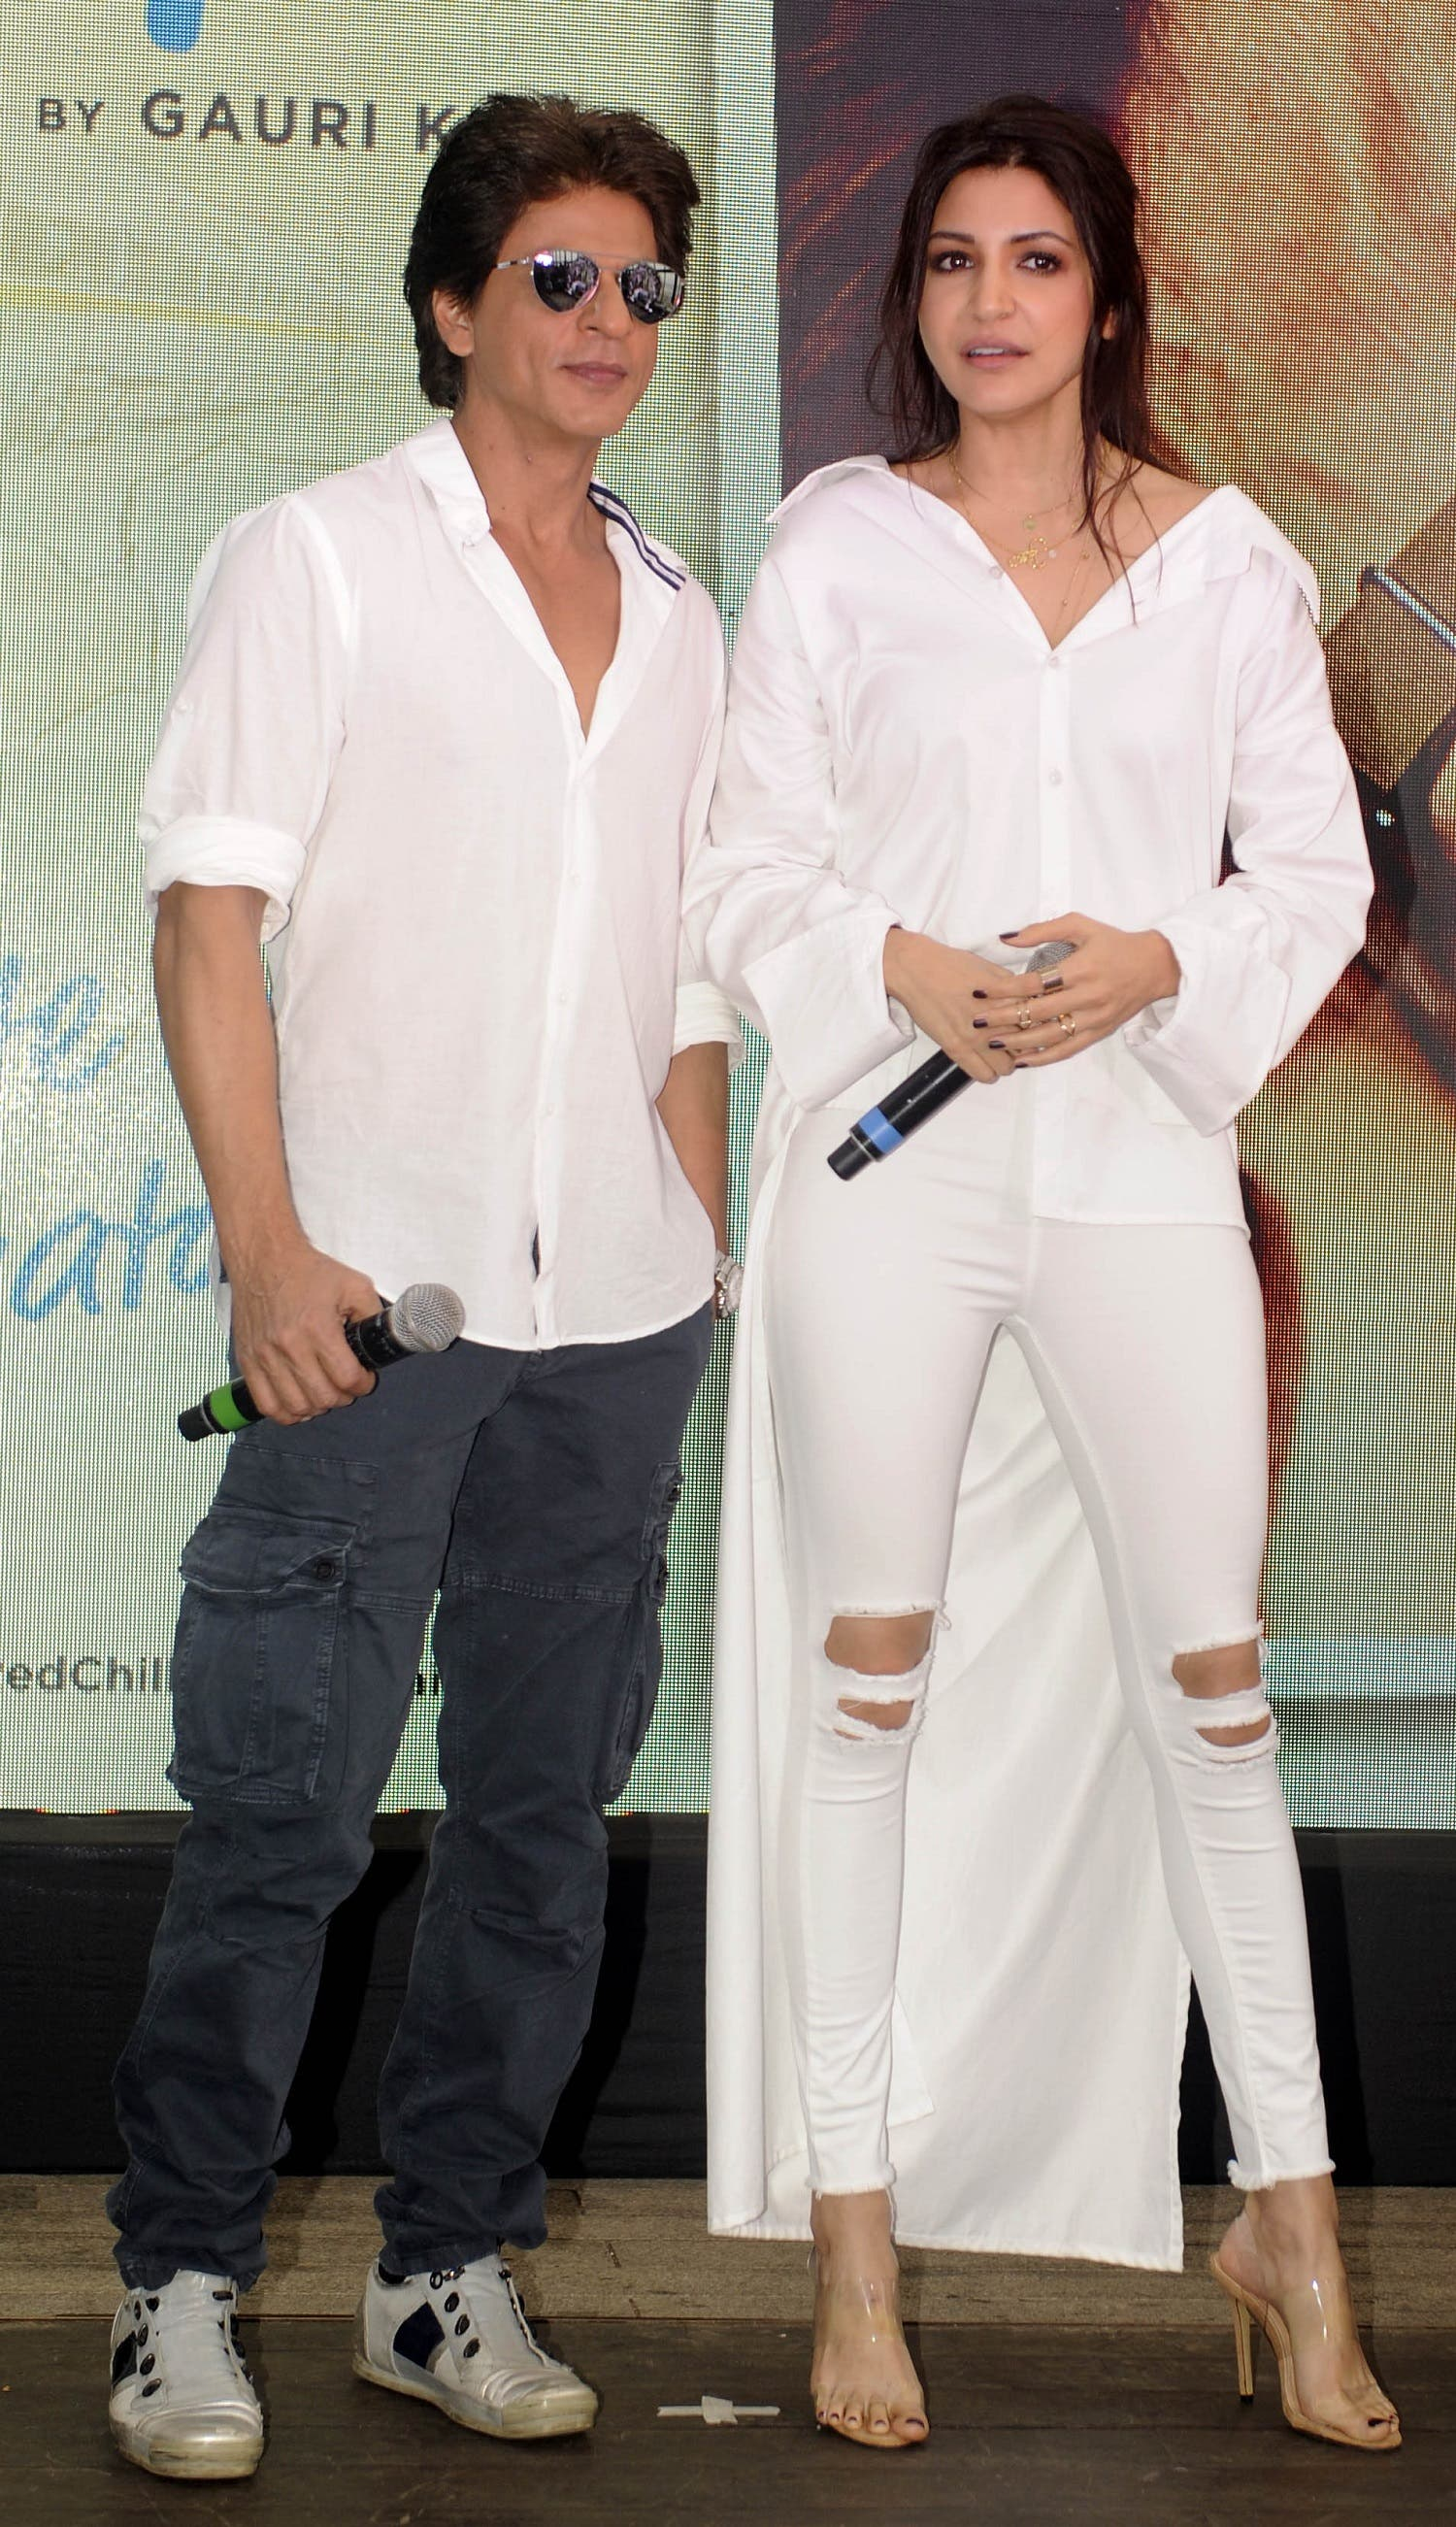 Shah Rukh Khan and Anushka Sharma pose for a photograph during a promotional event for the forthcoming Hindi film 'Jab Harry Met Sejal' in Mumbai on July 26, 2017. (AFP)